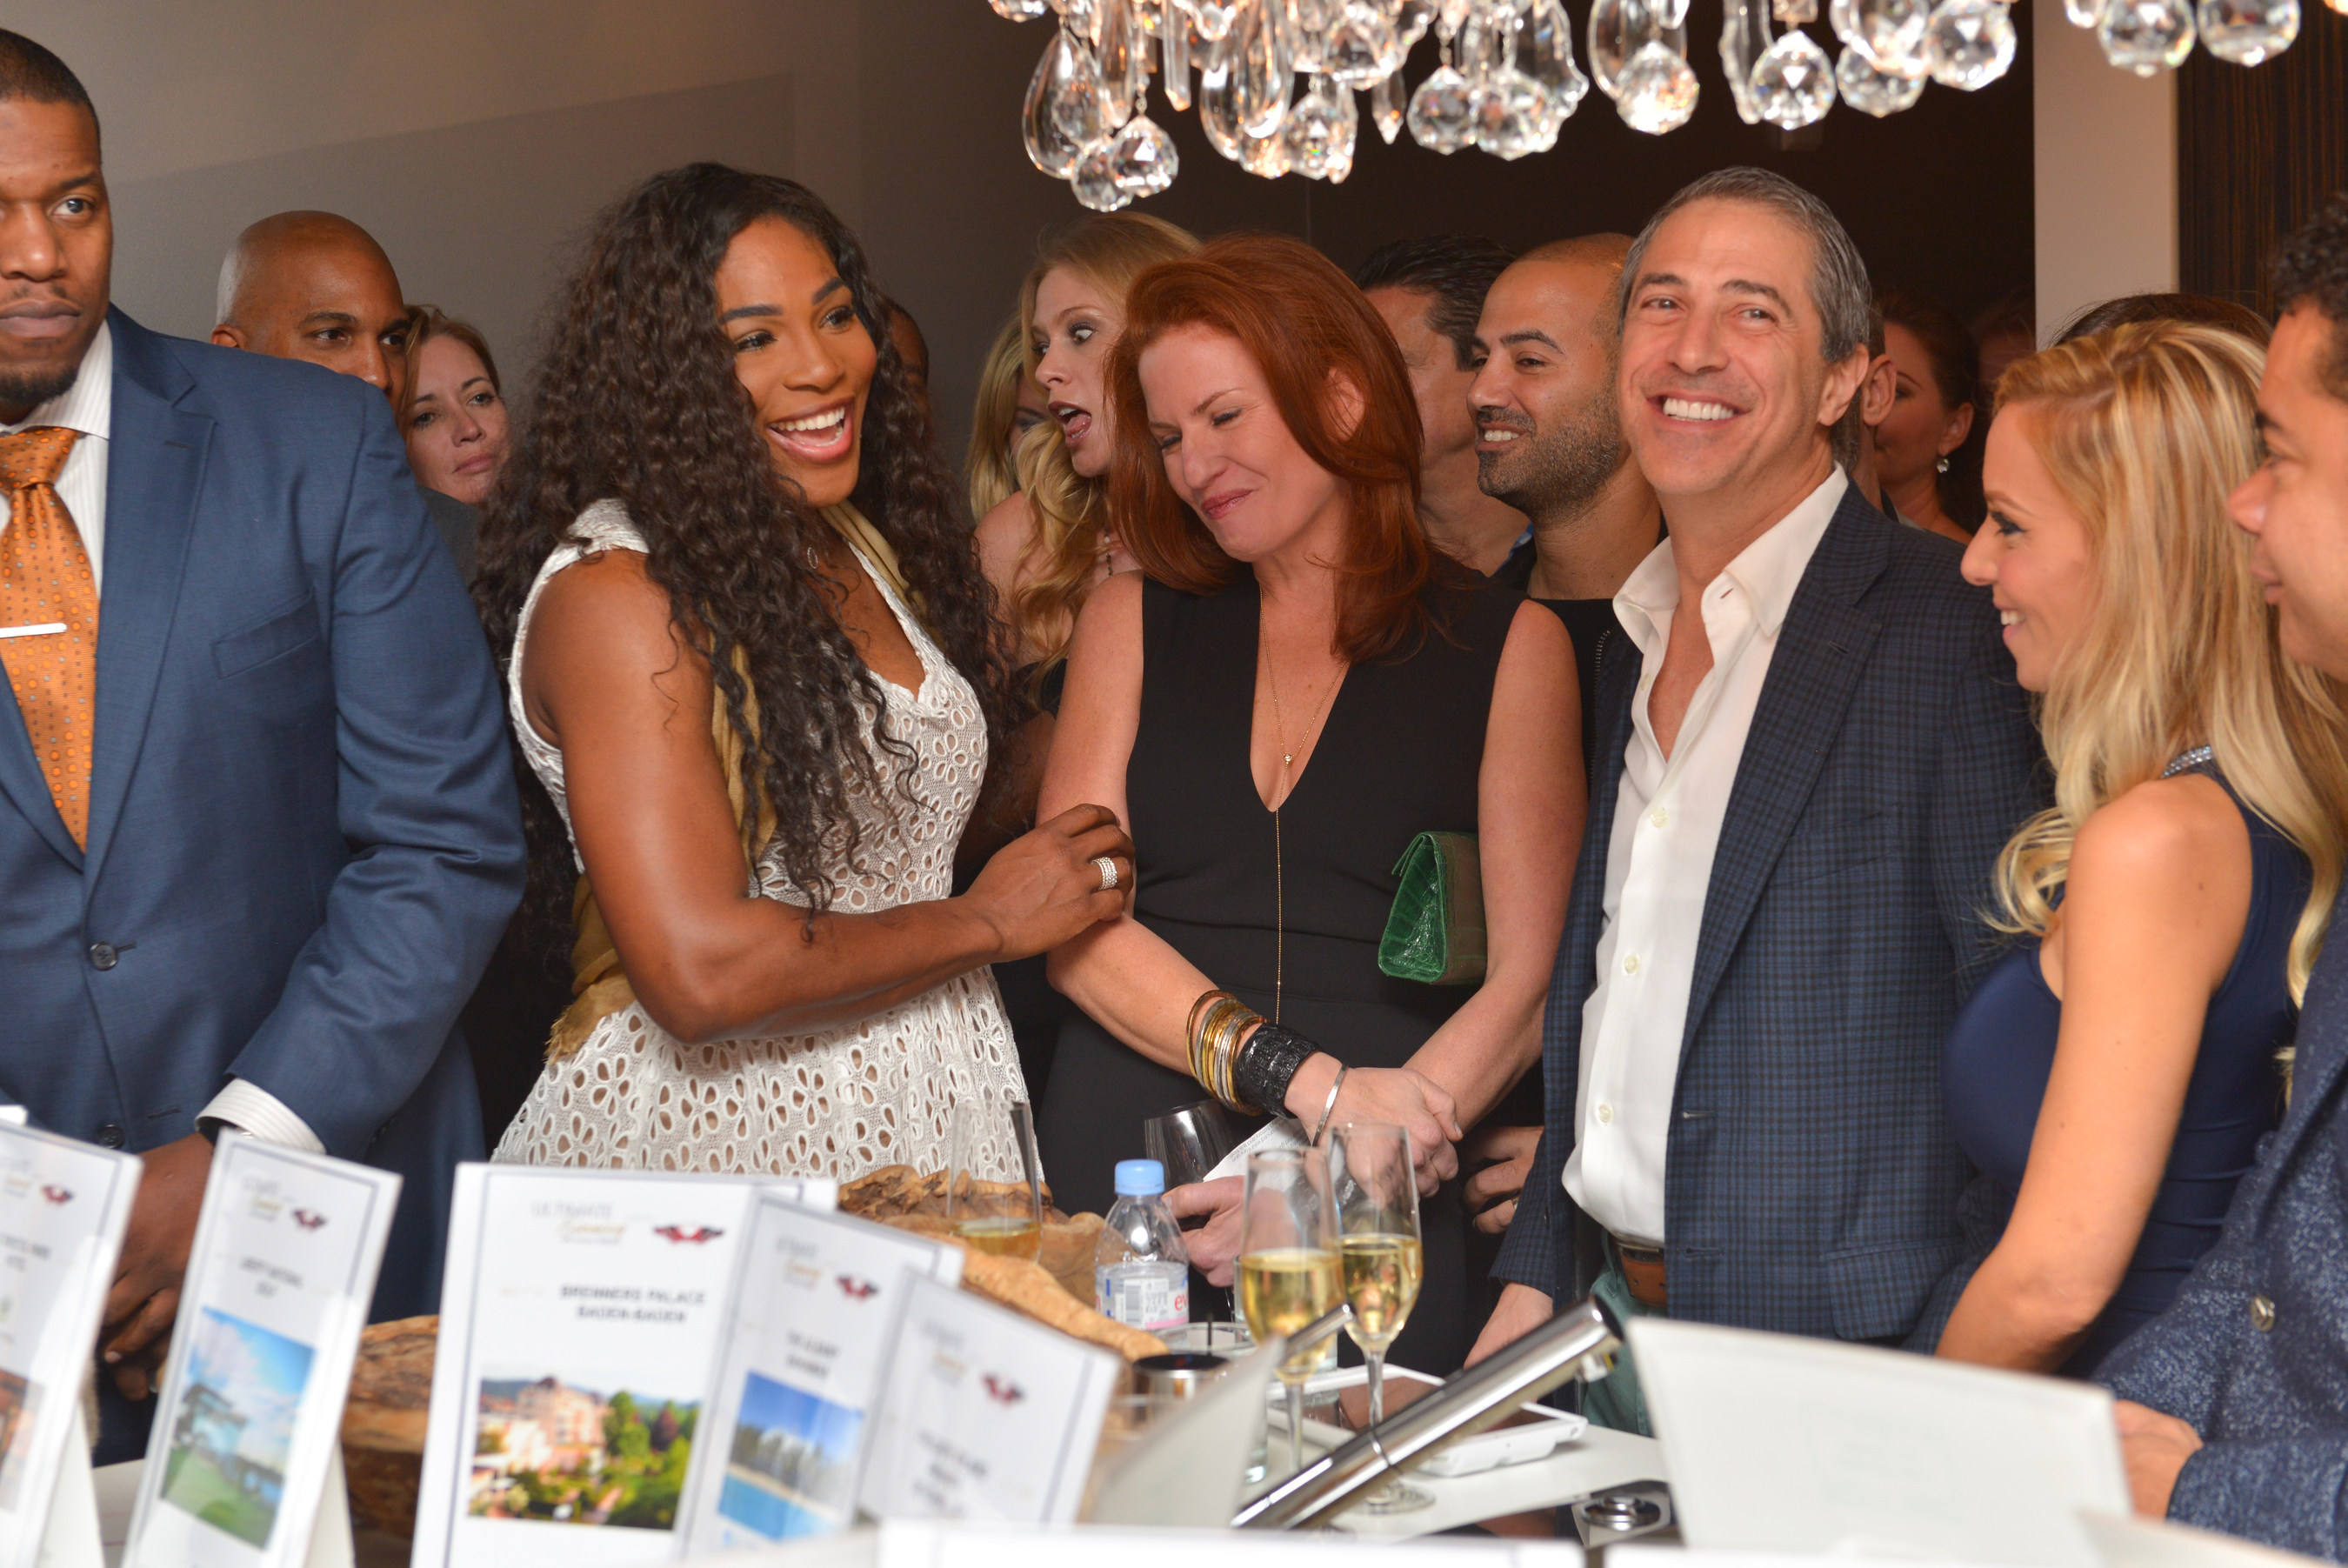 Serena Williams and Jessica Mindich, founder of The Caliber Foundation, at VIP charity event in Miami, FL where the Serena Williams Fund announced their partnership with The Caliber Foundation to end violence in America.